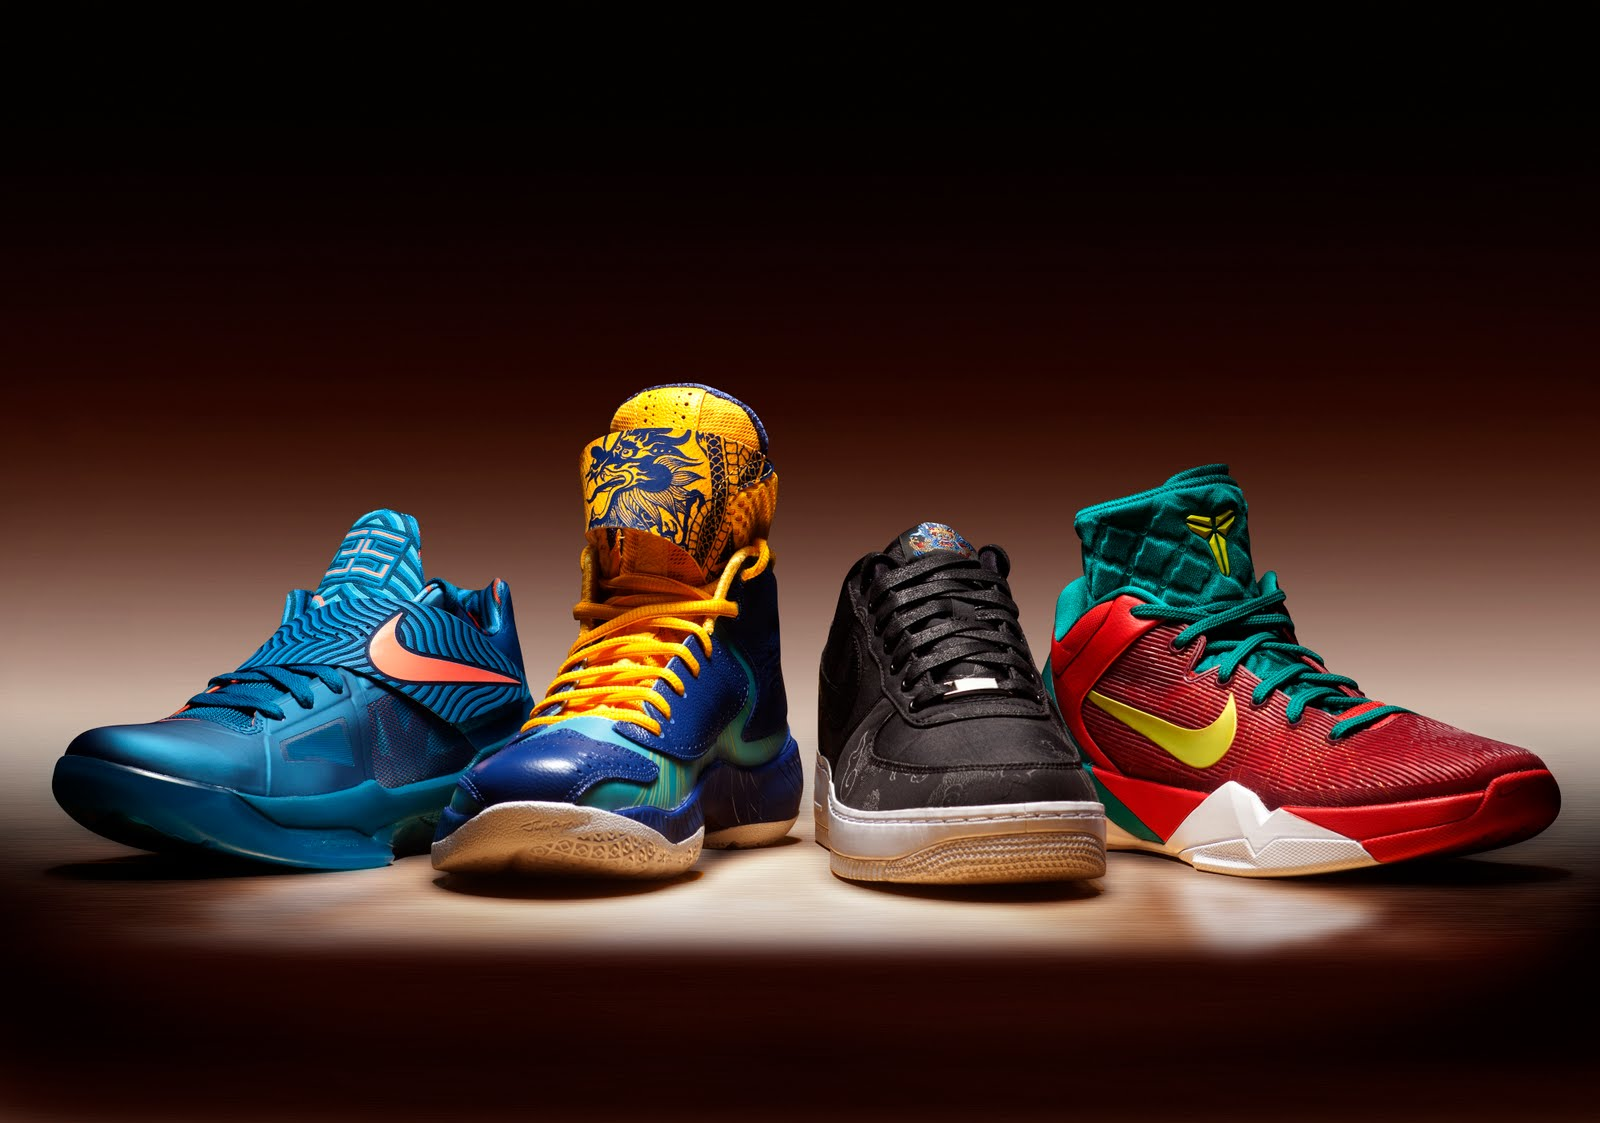 Super Punch: Nike's year of the dragon line